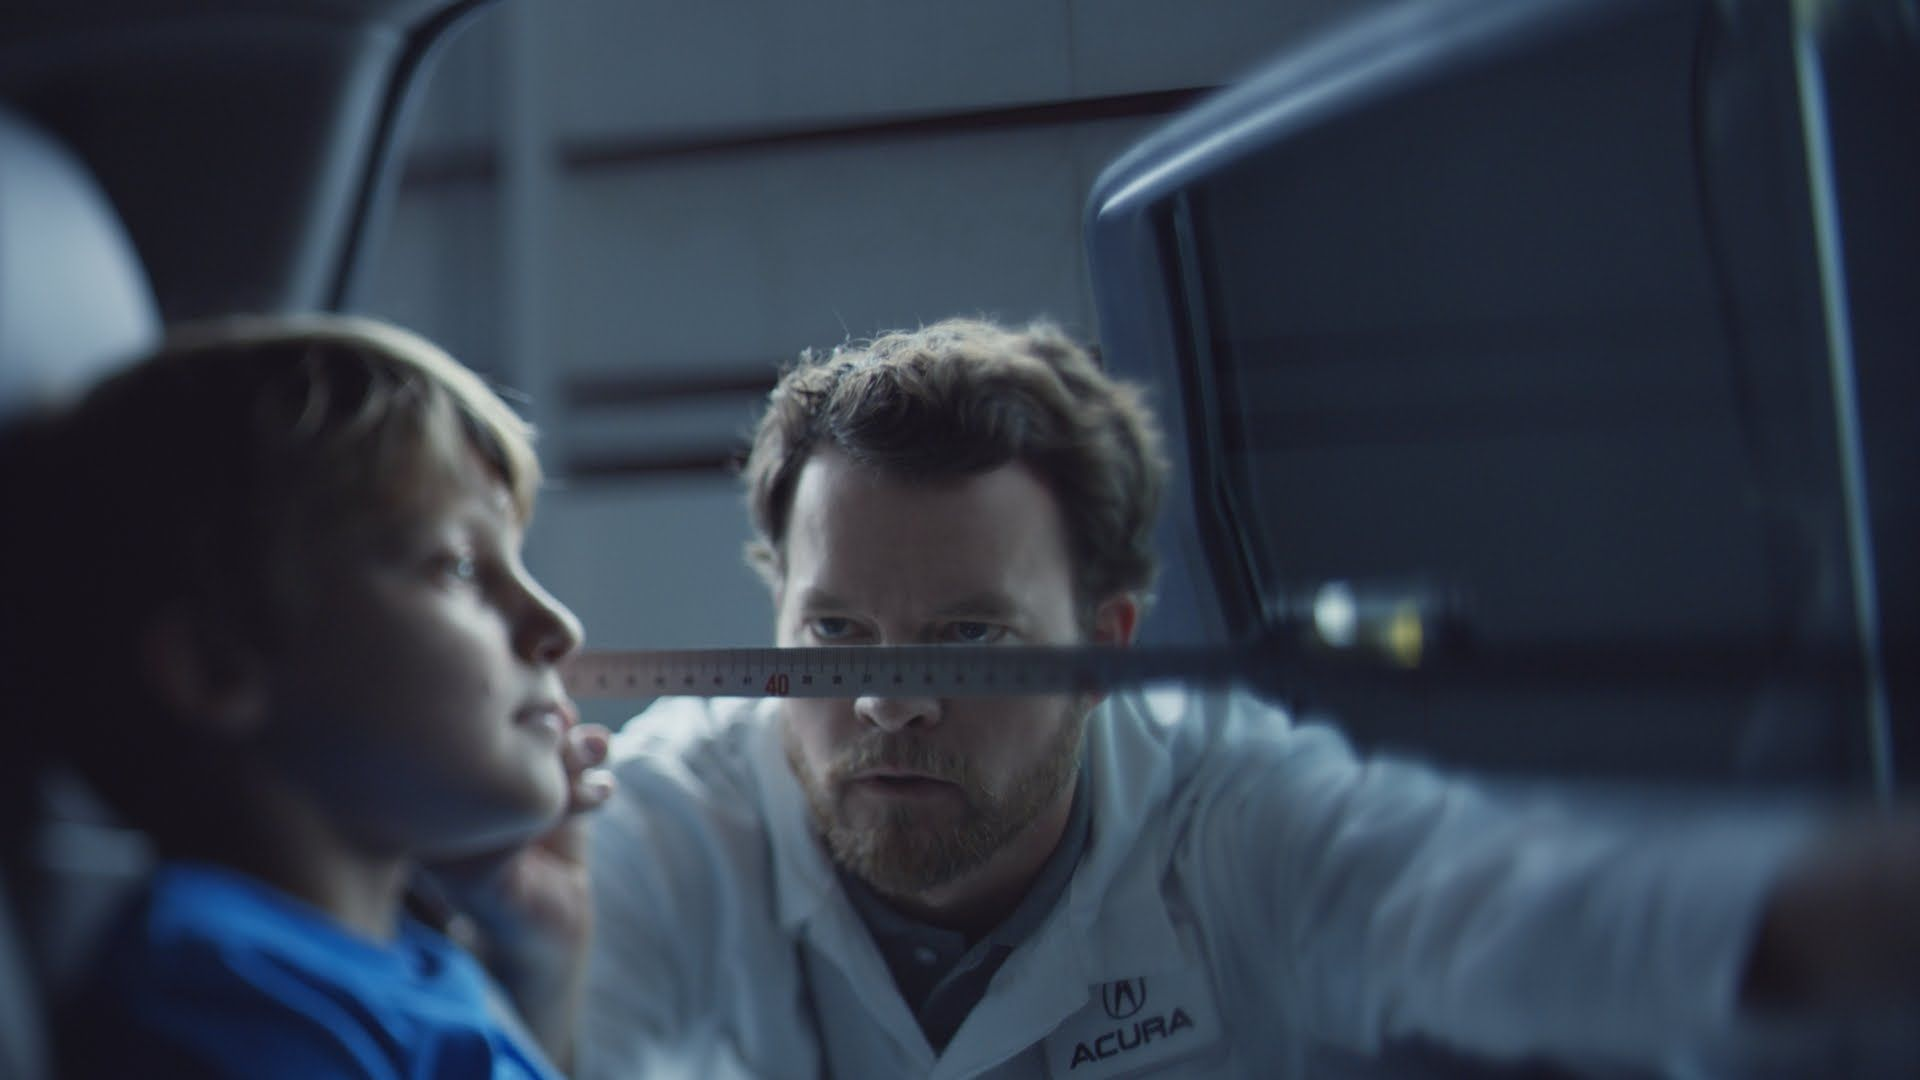 Acura – Safety – The Test I think this mercial is very powerful